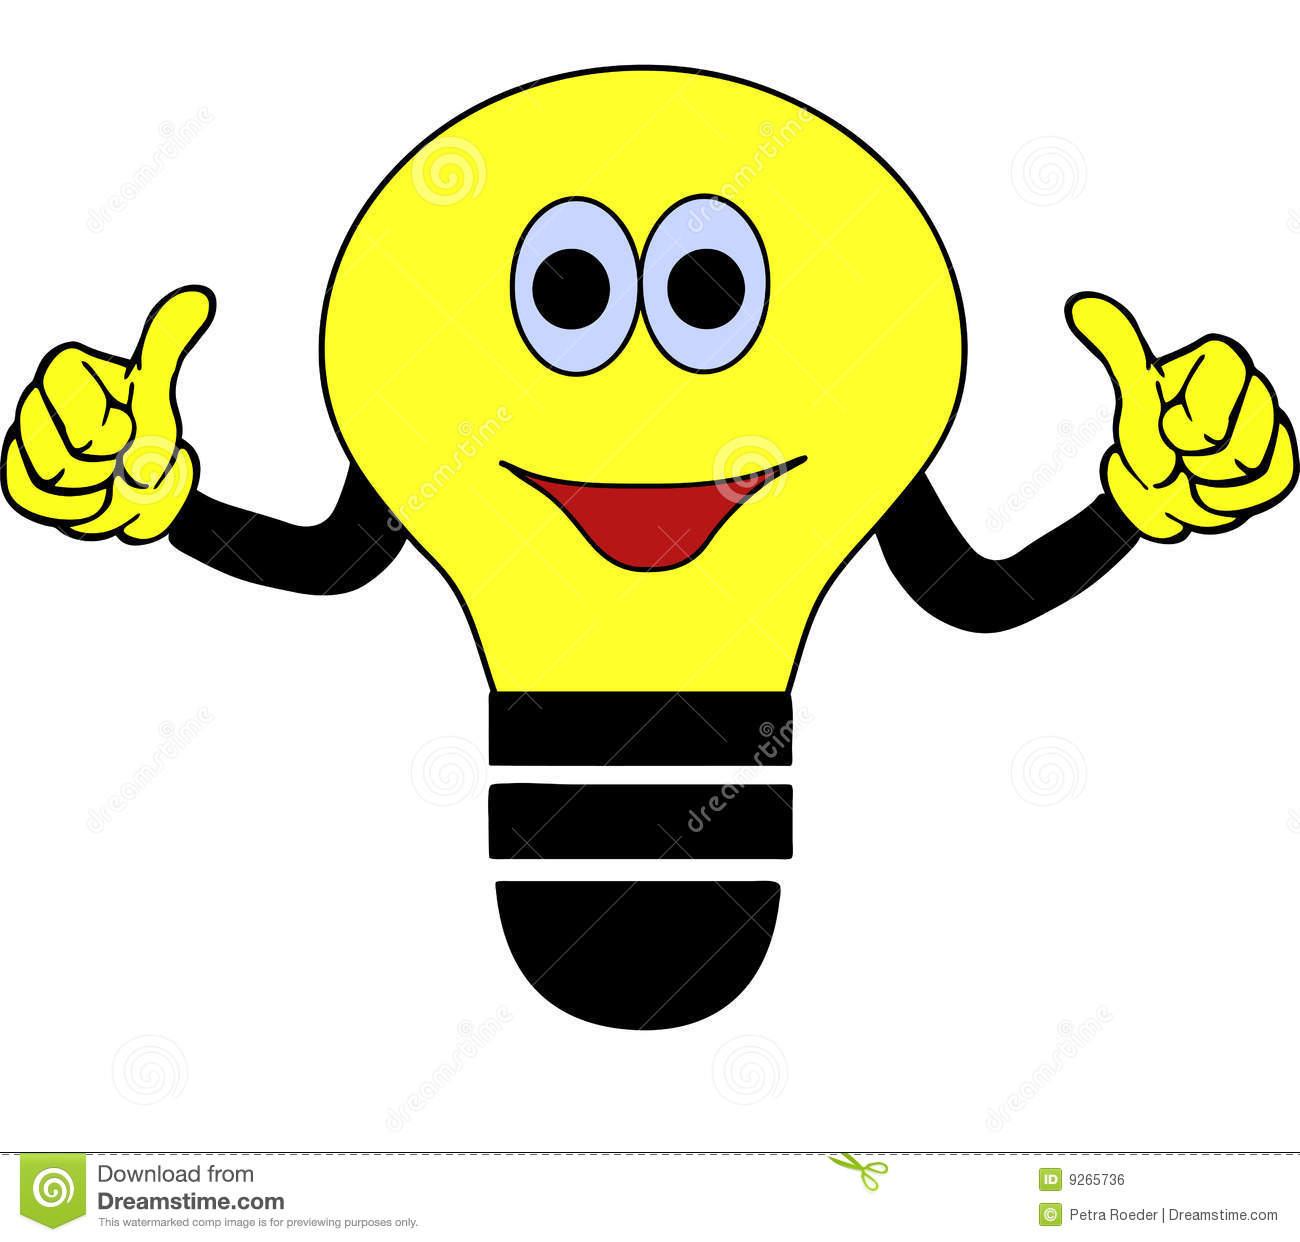 Cartoon illustration of a yellow and black light bulb with a smiling